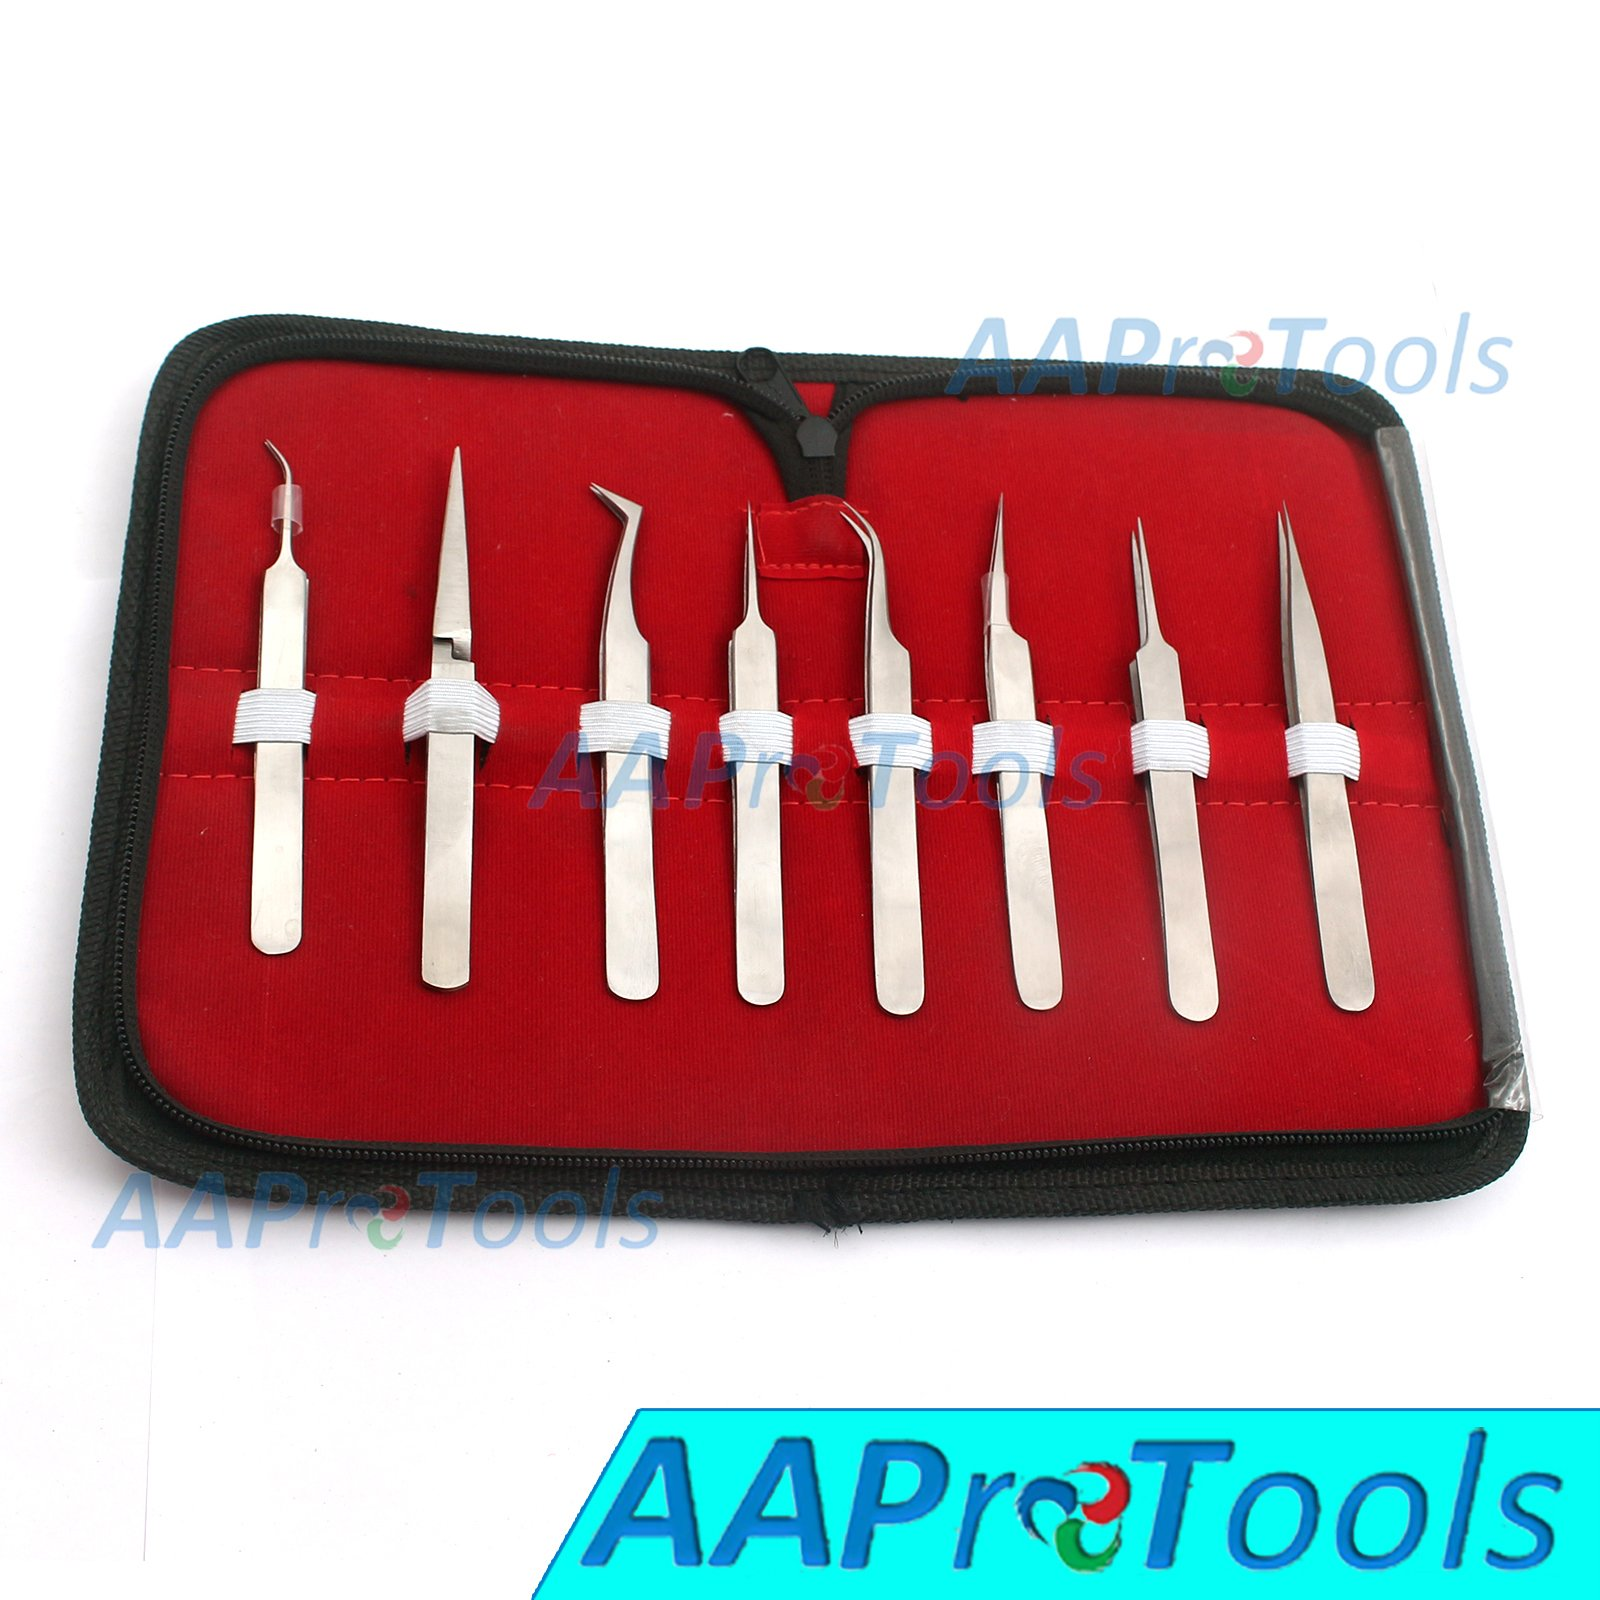 AAPROTOOLS SET OF 8 PIECE STAINLESS STEEL EYELASH EXTENSION TWEEZERS A+ QUALITY